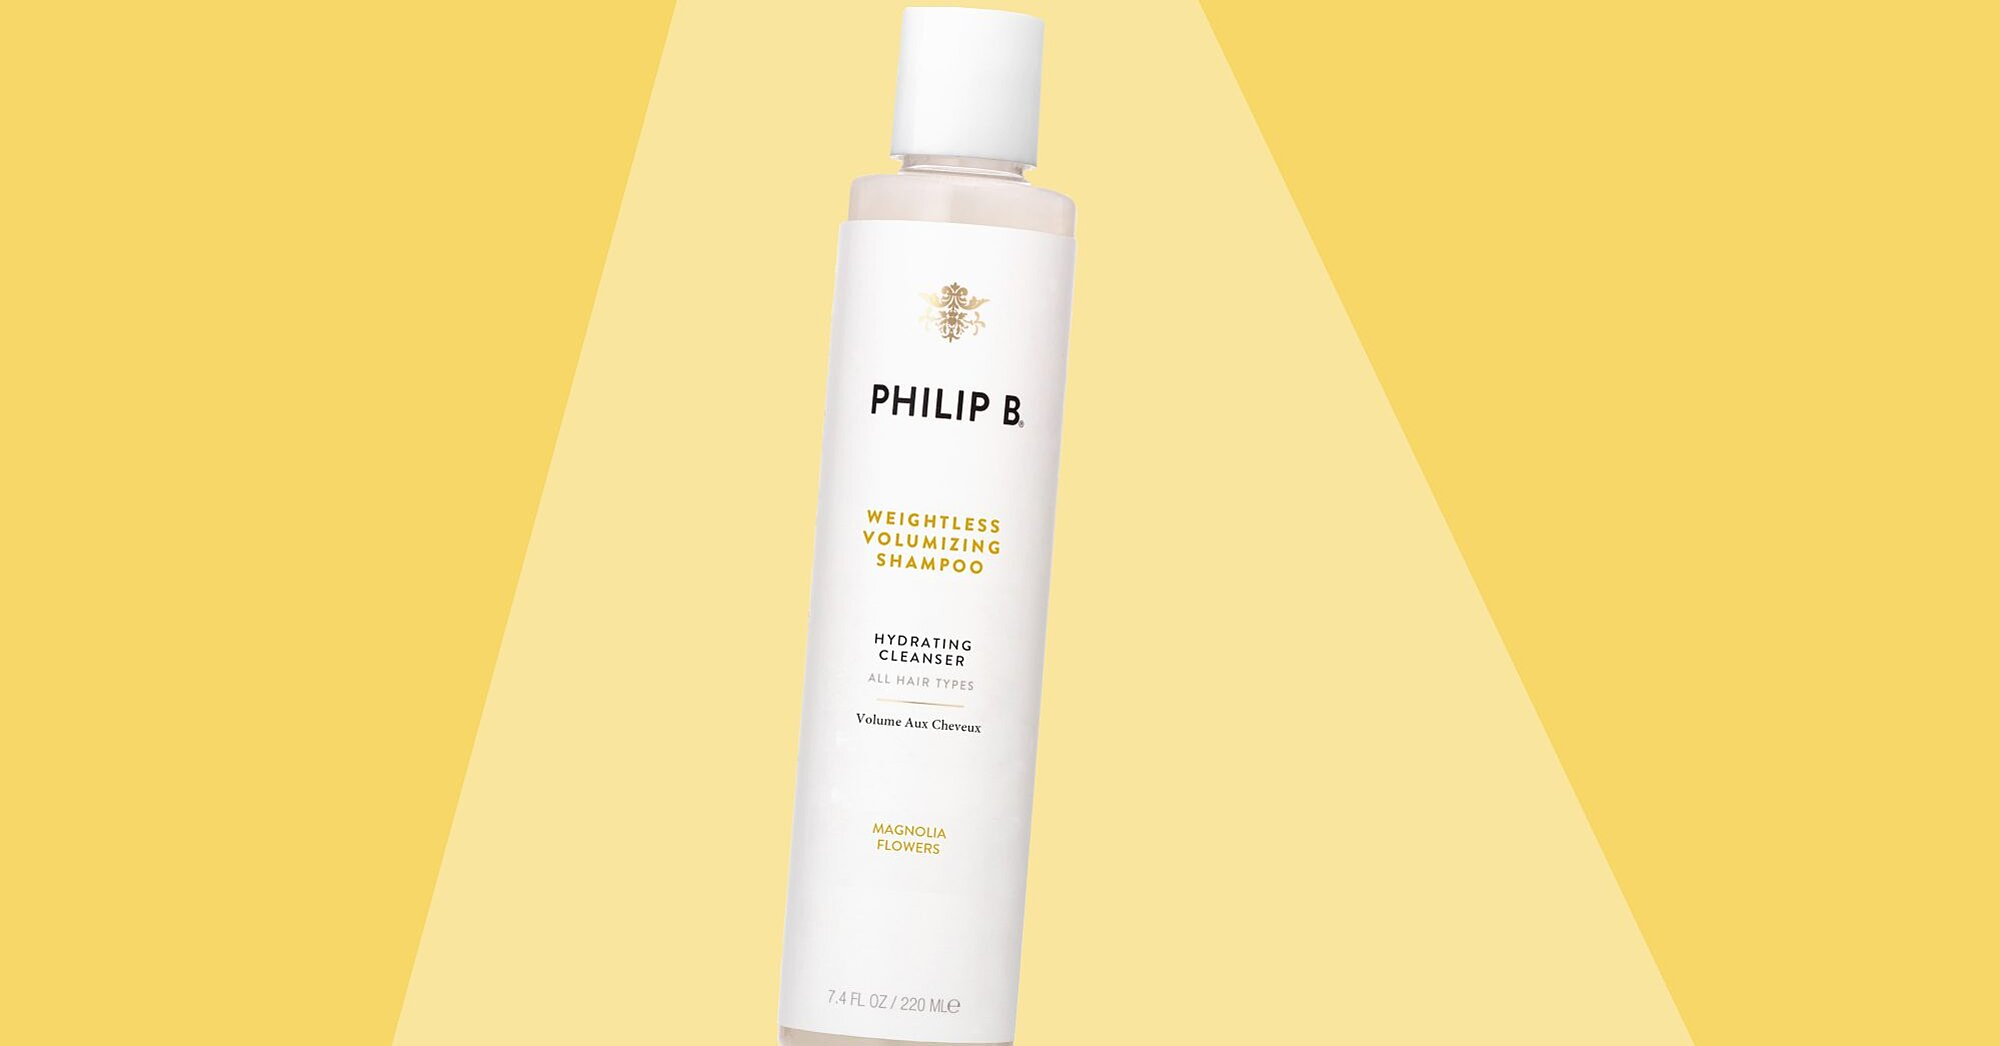 My 59-Year-Old Mom Swears By This Volumizing Shampoo for Thinning Hair